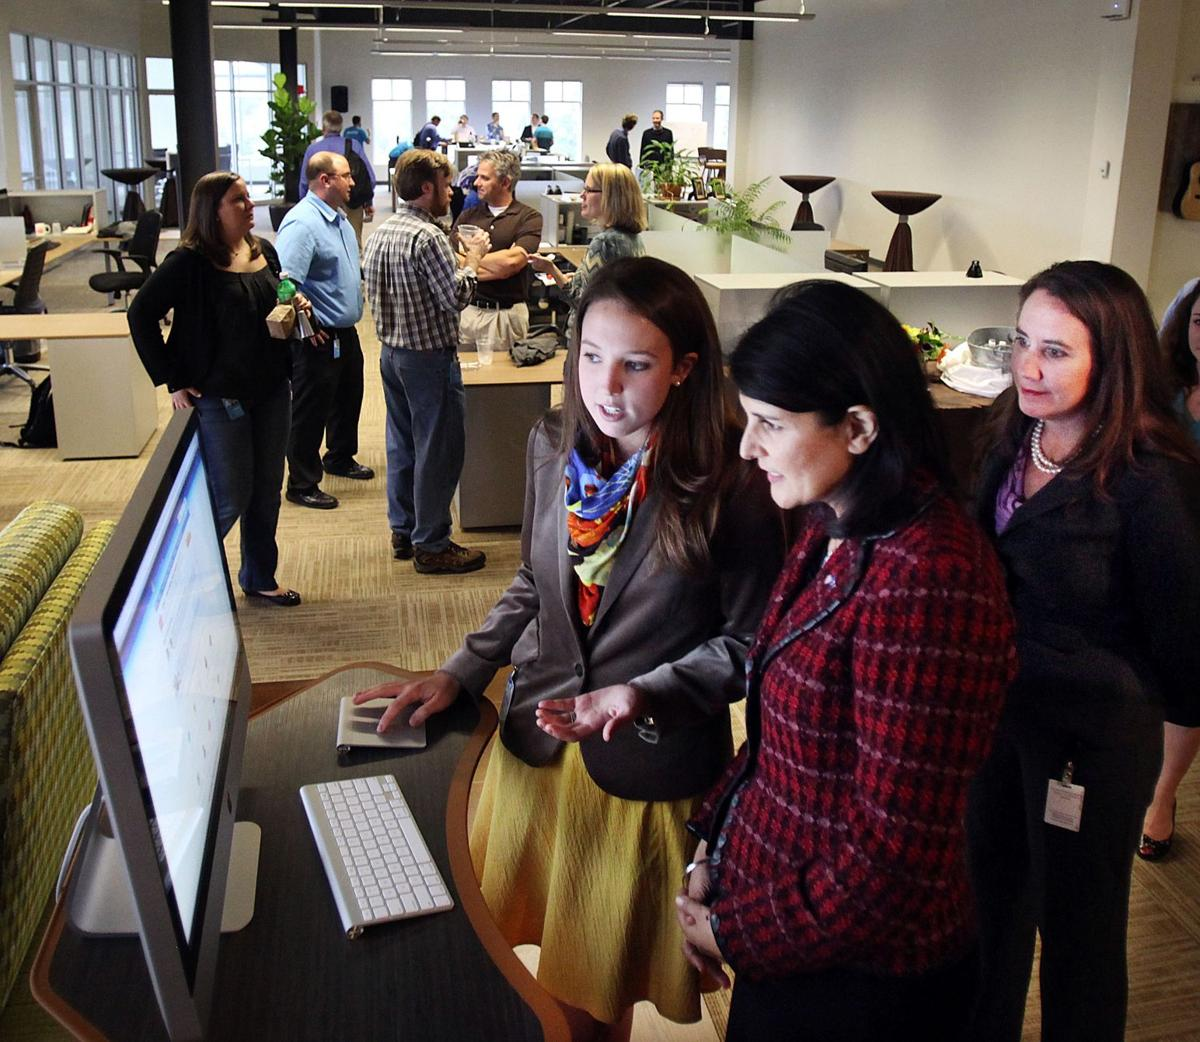 Charleston software firm Benefitfocus to launch IPO next week